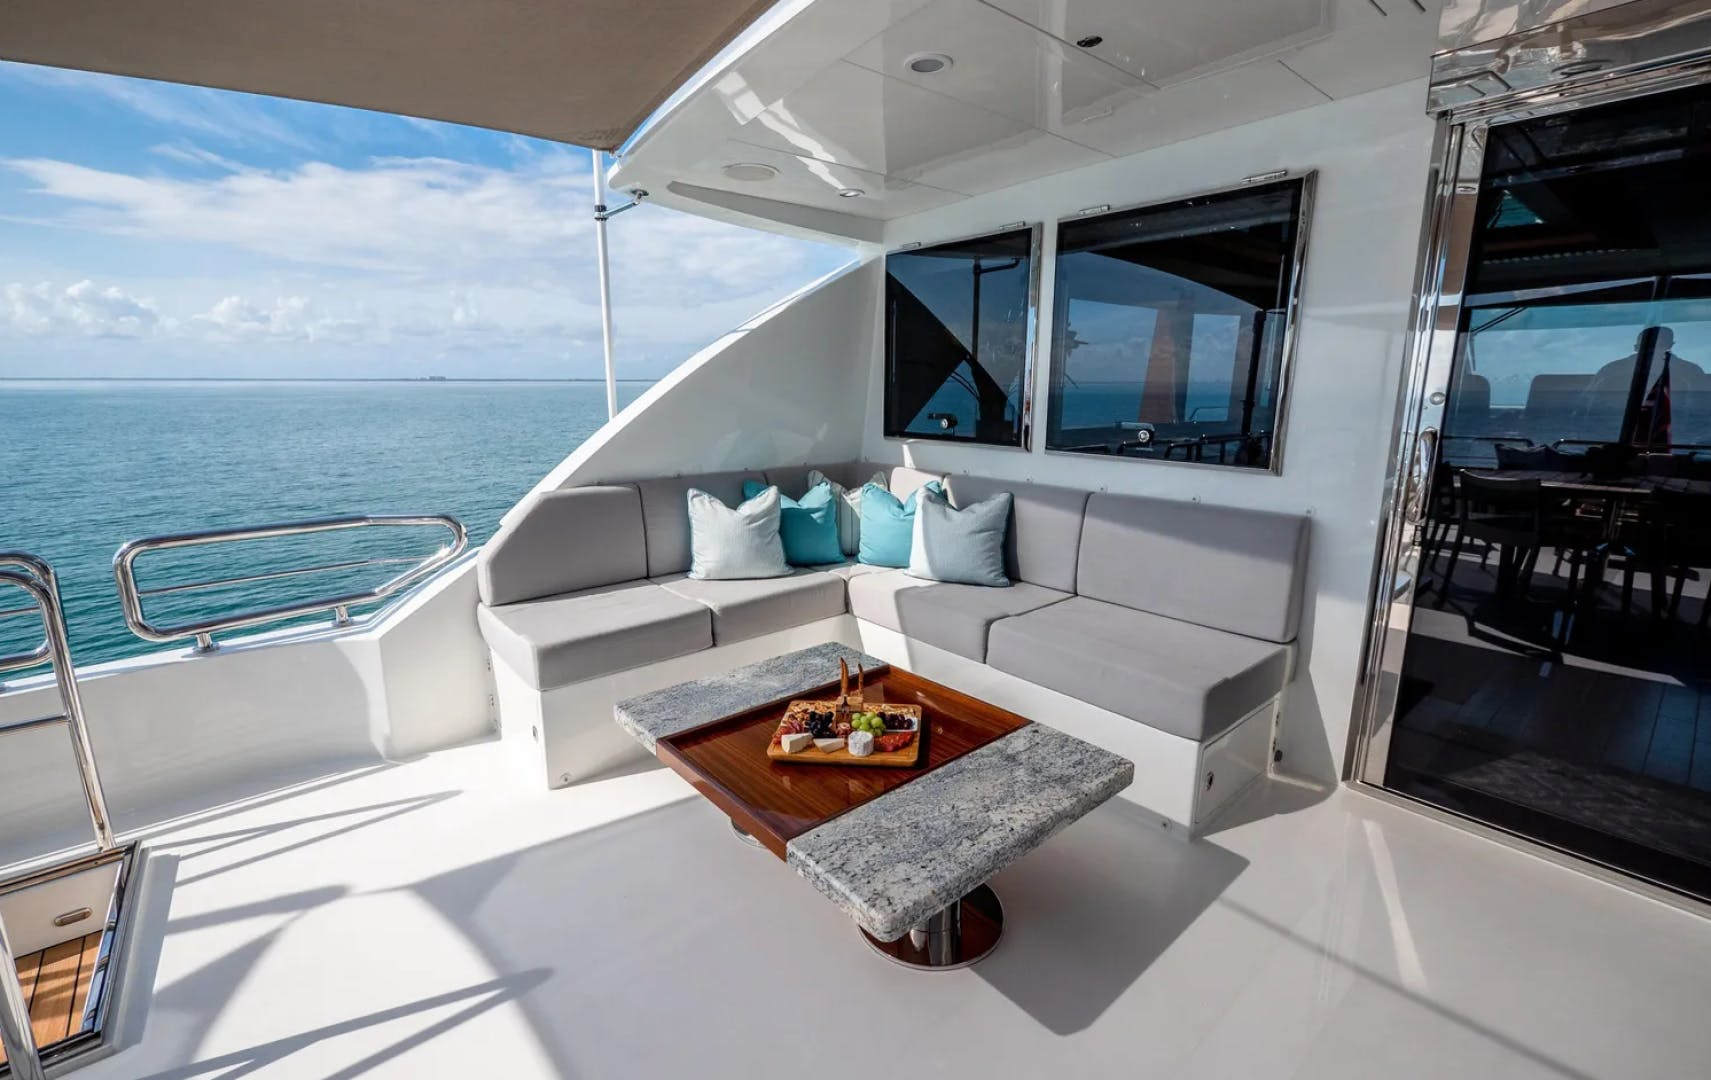 2016 Ocean Alexander 100' 100 Skylounge Sea N Sea | Picture 6 of 9